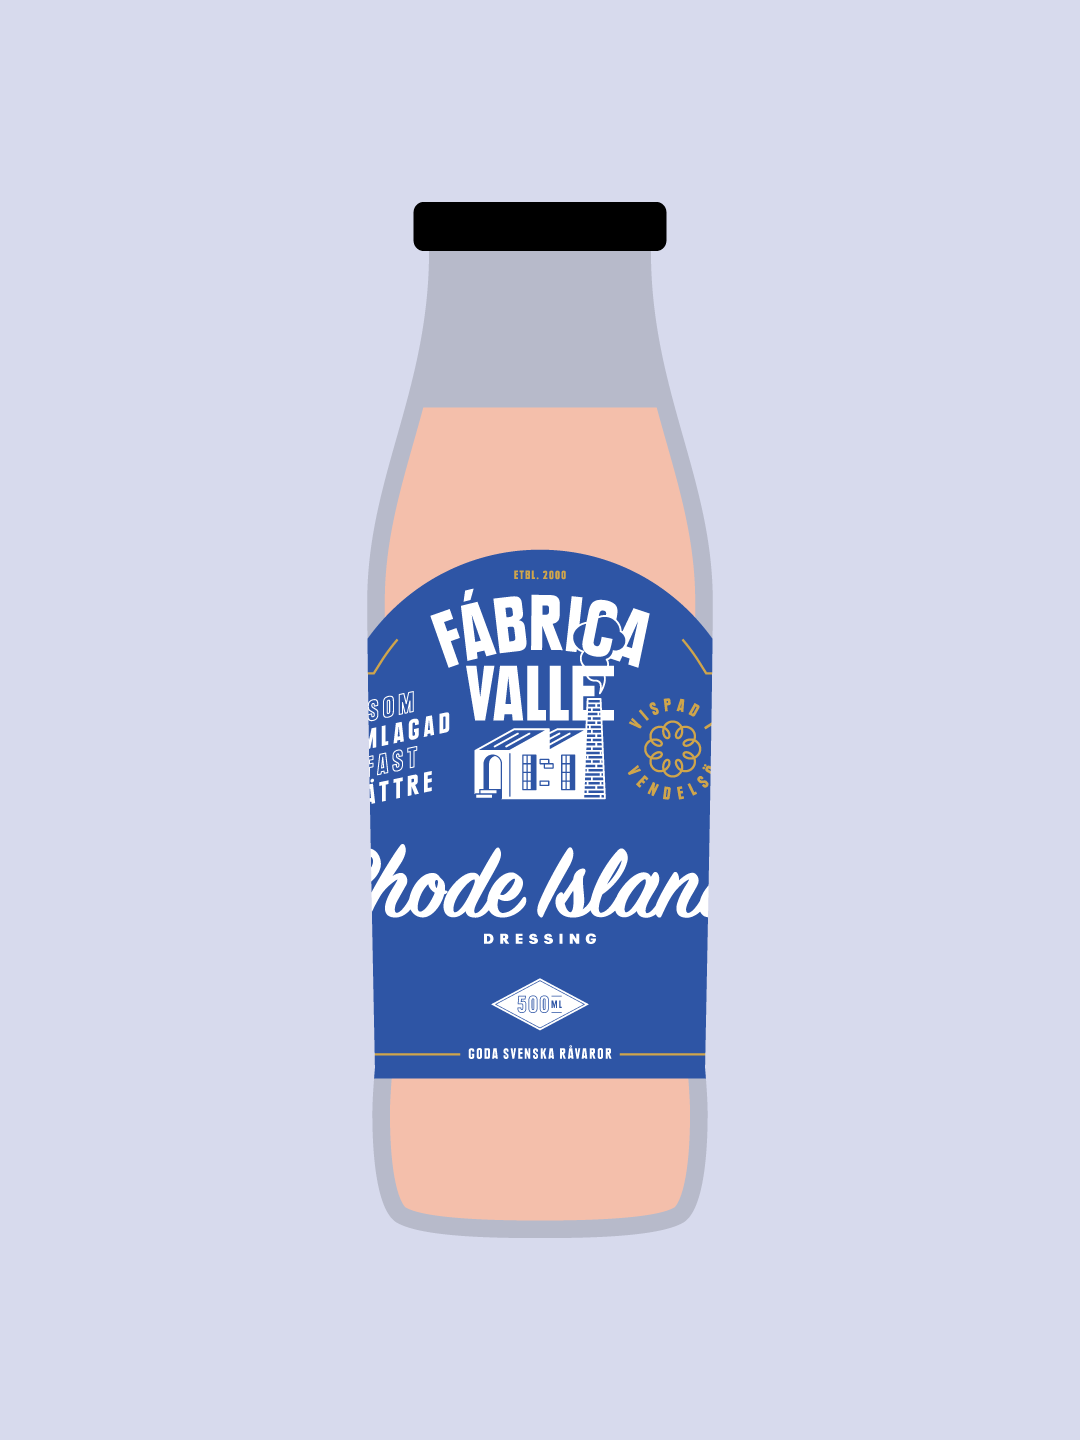 Fabrica_Valle_Illustration_Rhode_Island_1080x1440px_72ppi.png